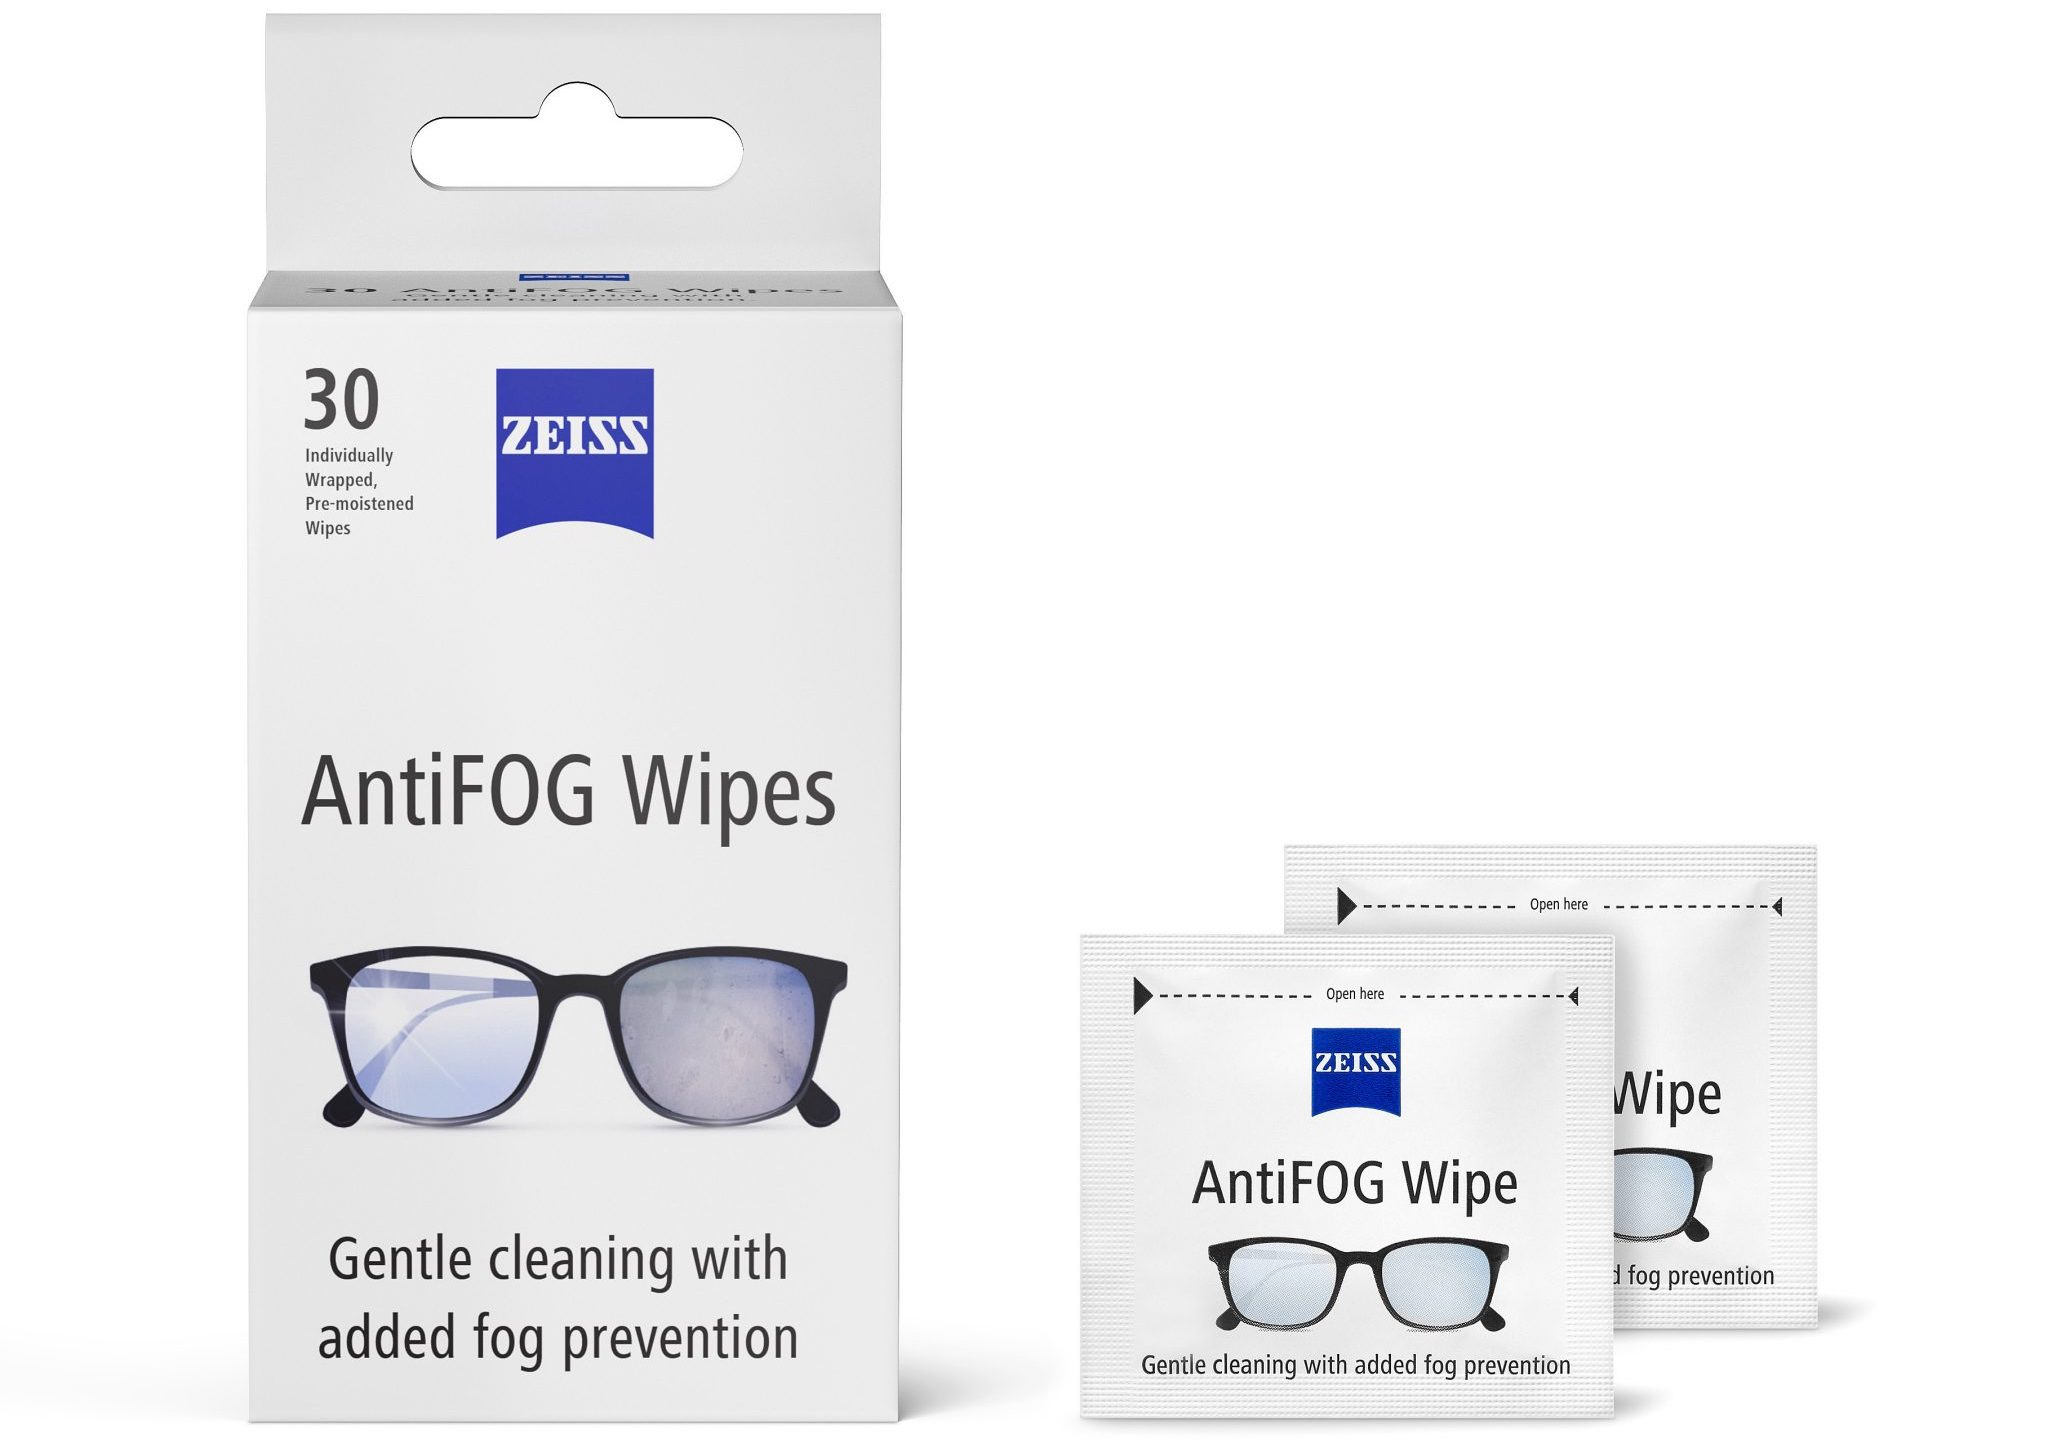 Zeiss_AntiFOG_Wipe_Contents_F